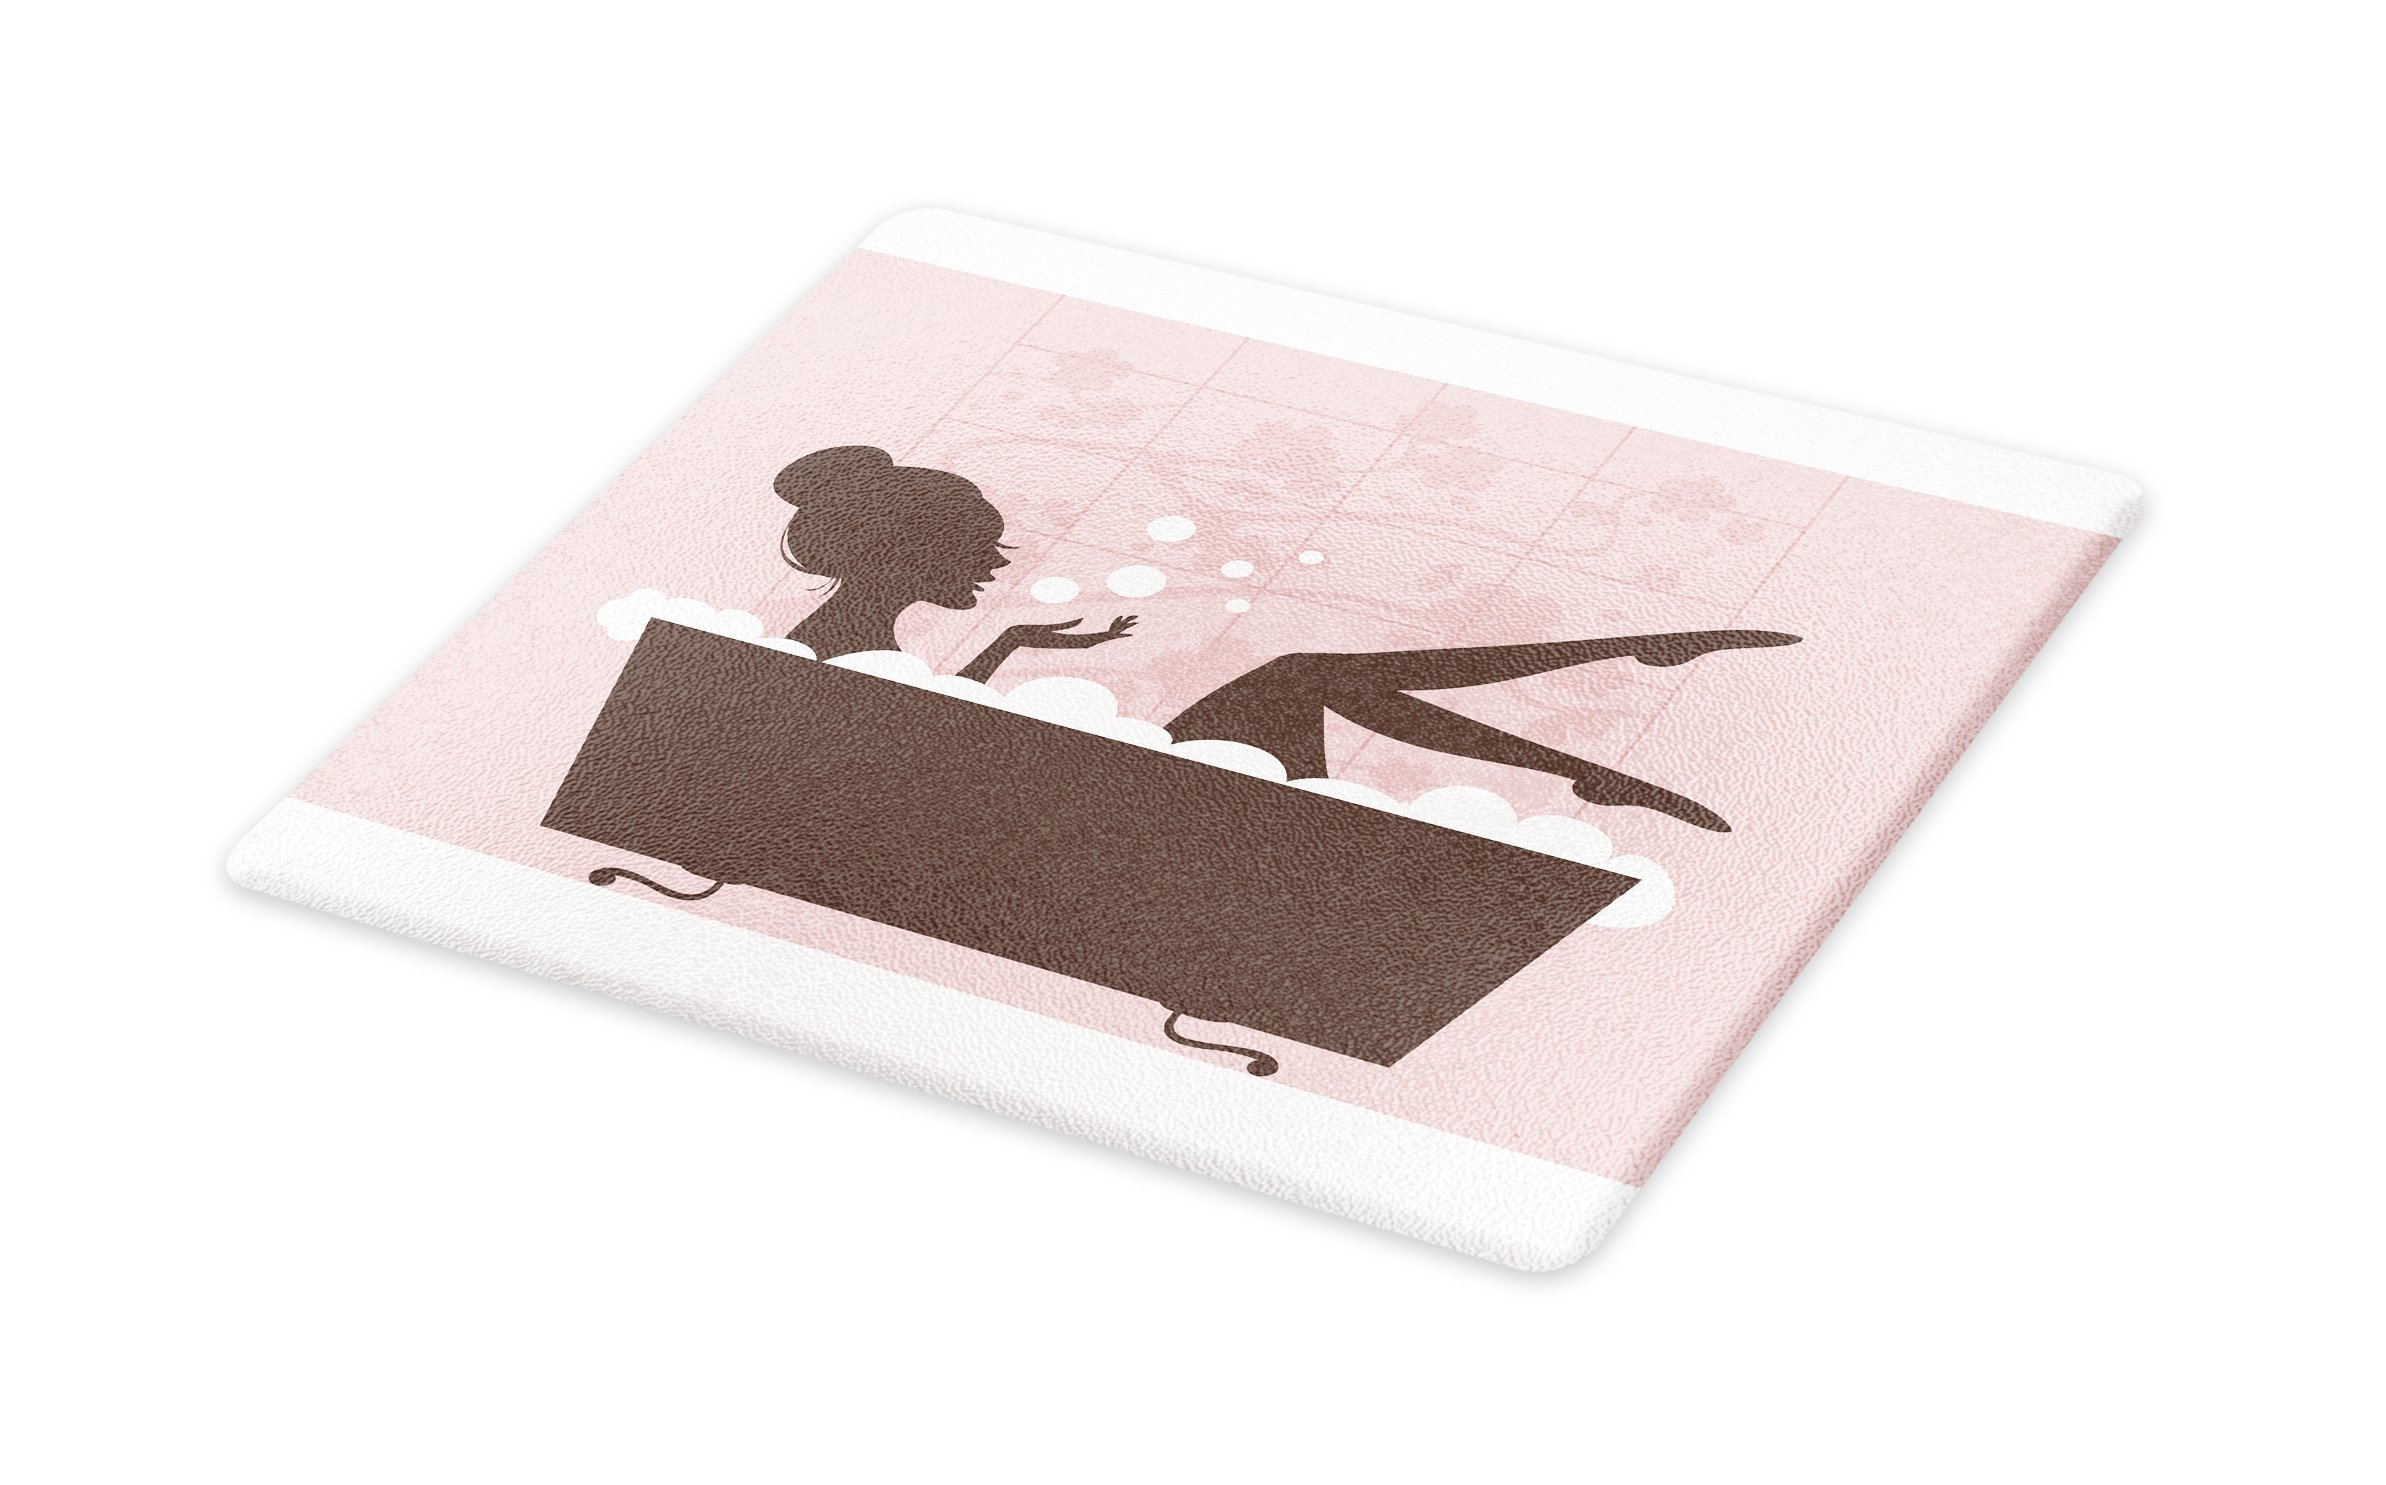 Lunarable Teens Girls Cutting Board, Beautiful Woman in Bath Tub Spa Treatment Relaxing Concept Vintage Style, Decorative Tempered Glass Cutting and Serving Board, Small Size, Pink Dark Grey